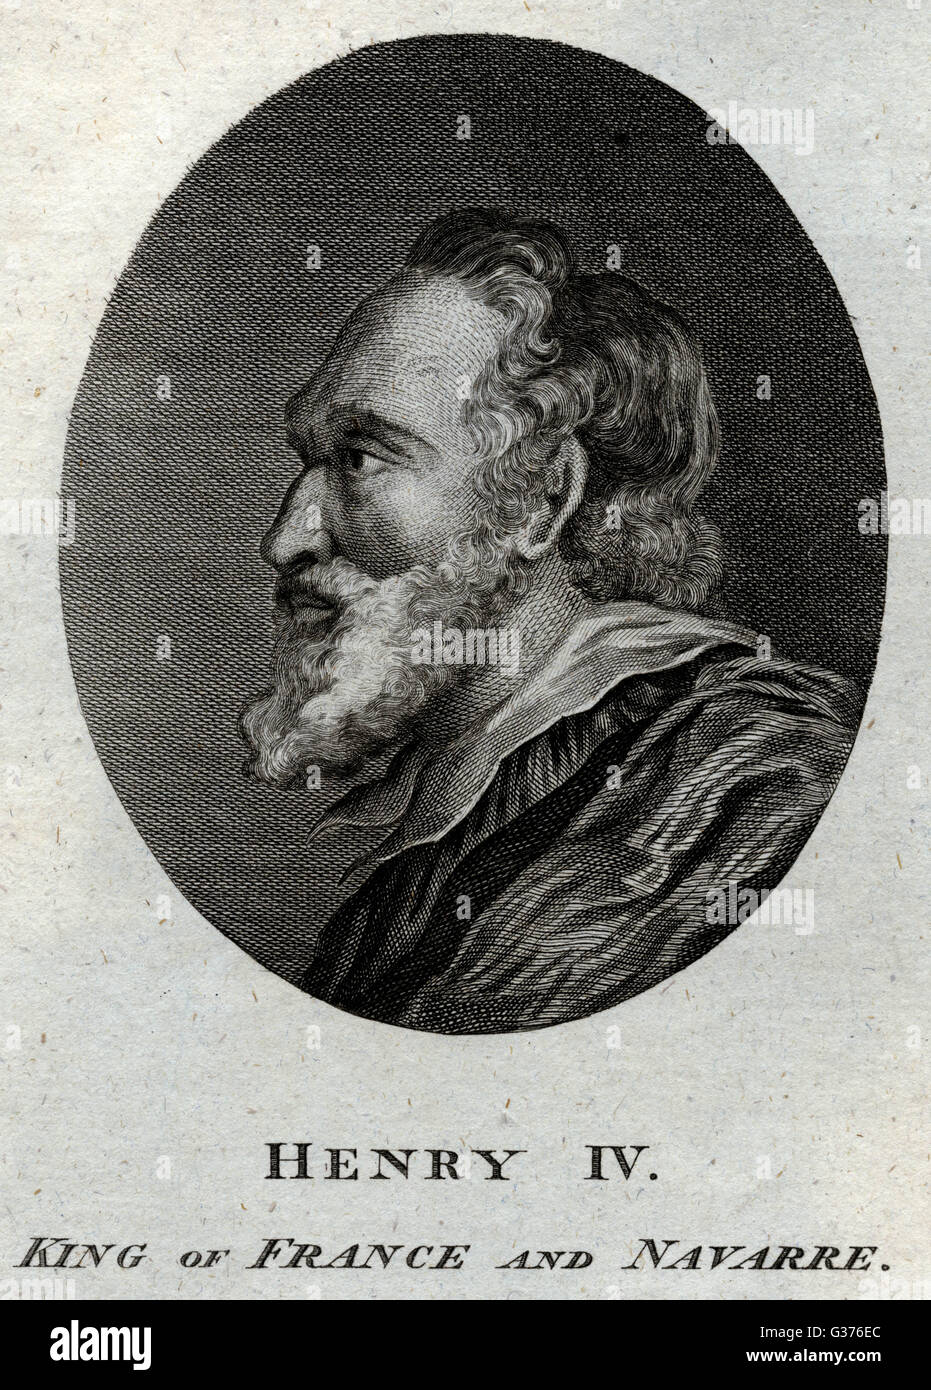 HENRI IV,  King of France and Navarre.        Date: 1553 - 1610 - Stock Image